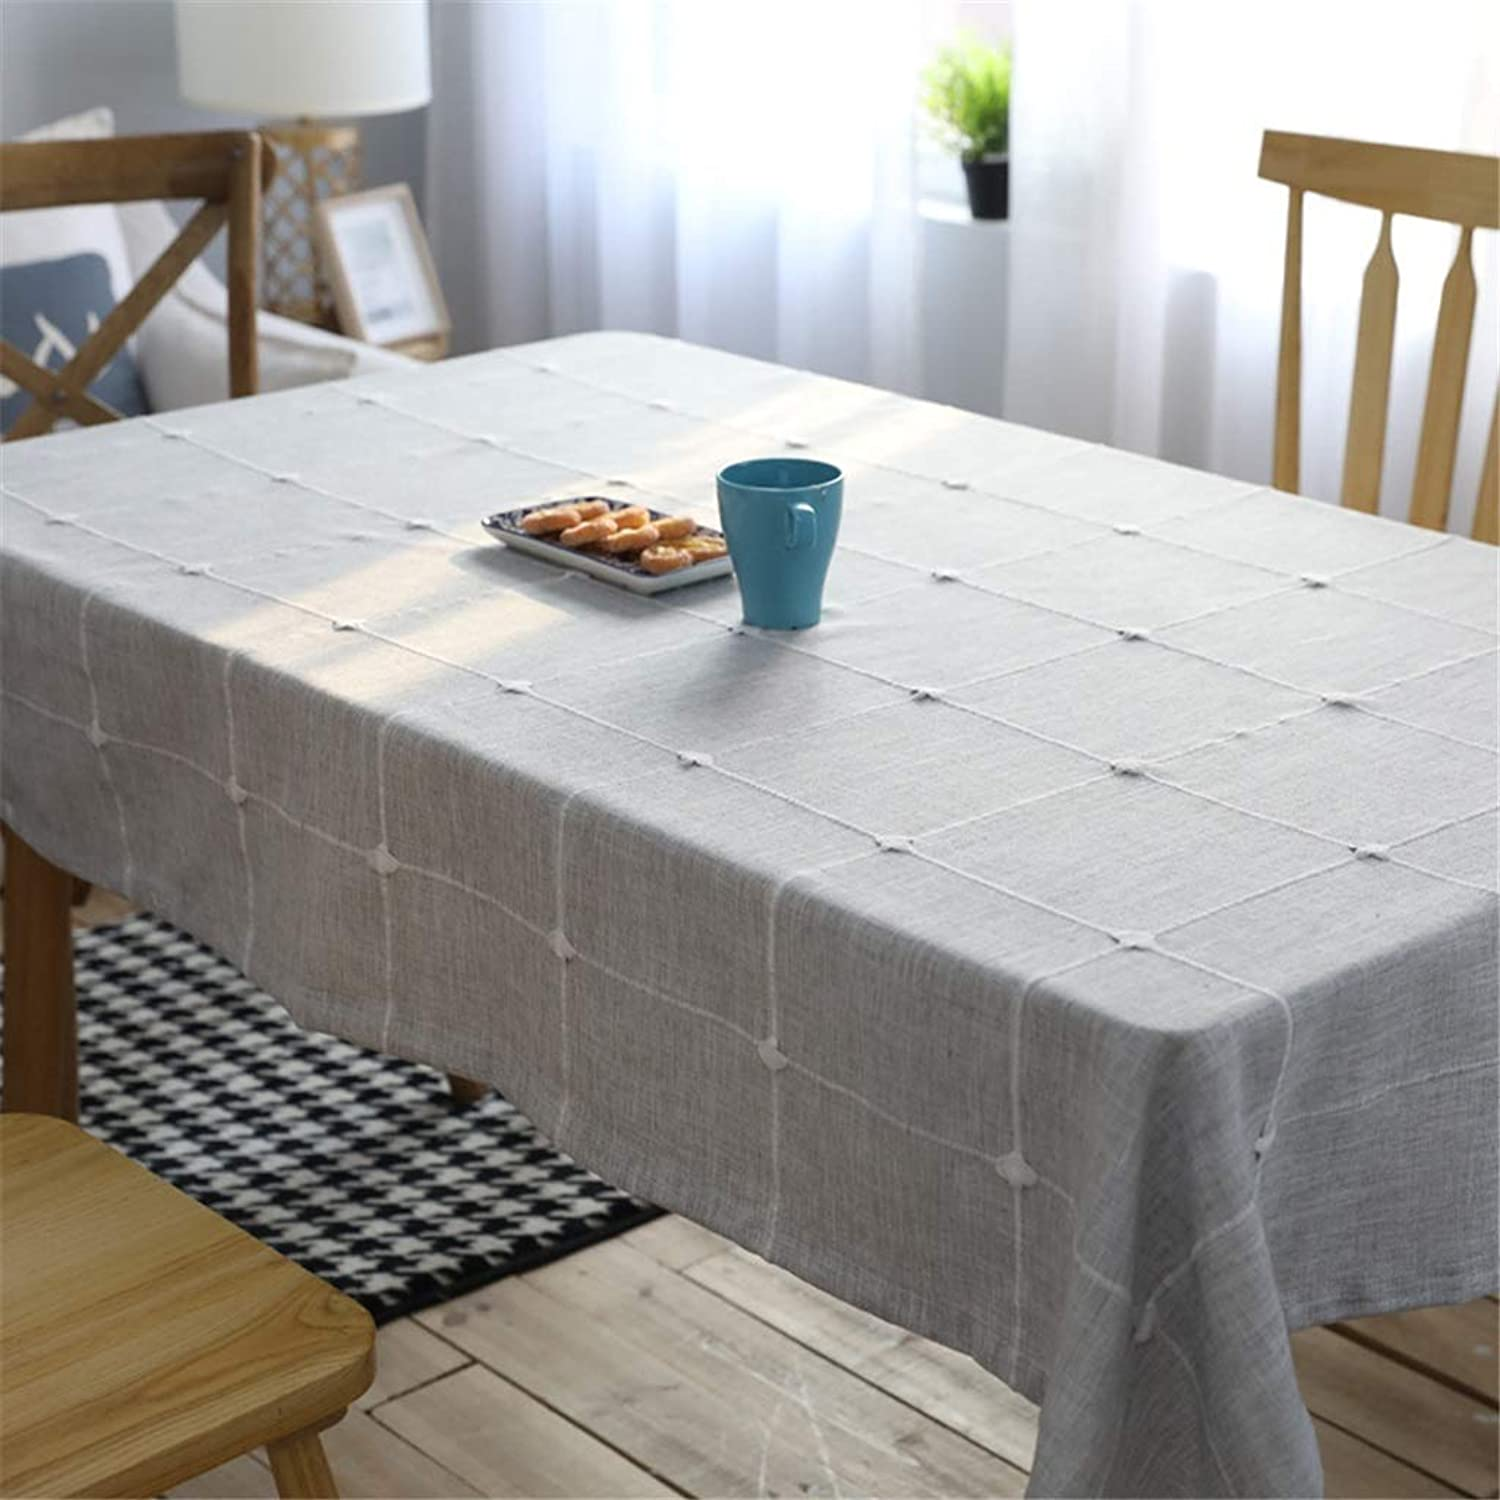 JIAO UK Waterproof Tablecloth Light color Simple American Country Restaurant Grey Picnic Tablecloth